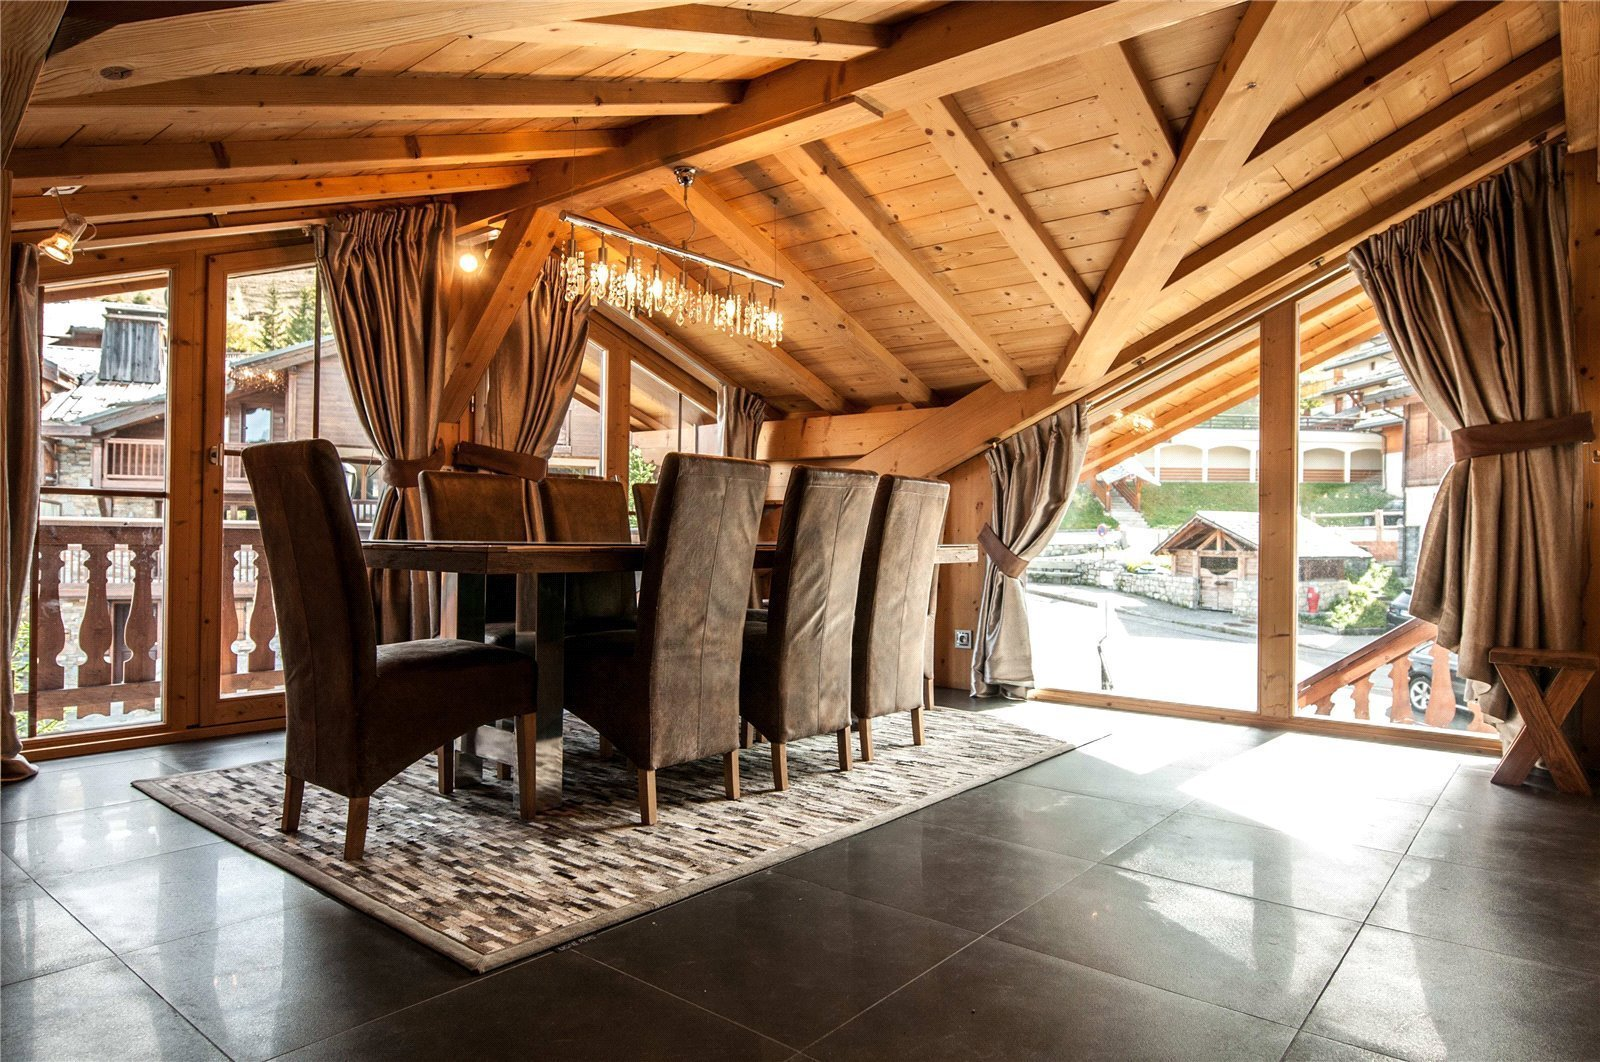 Buying Villa Courchevel Exceptional 3 bedroom penthouse in a chalet style residence in Courchevel Moriond, ideally located for the ski slopes.